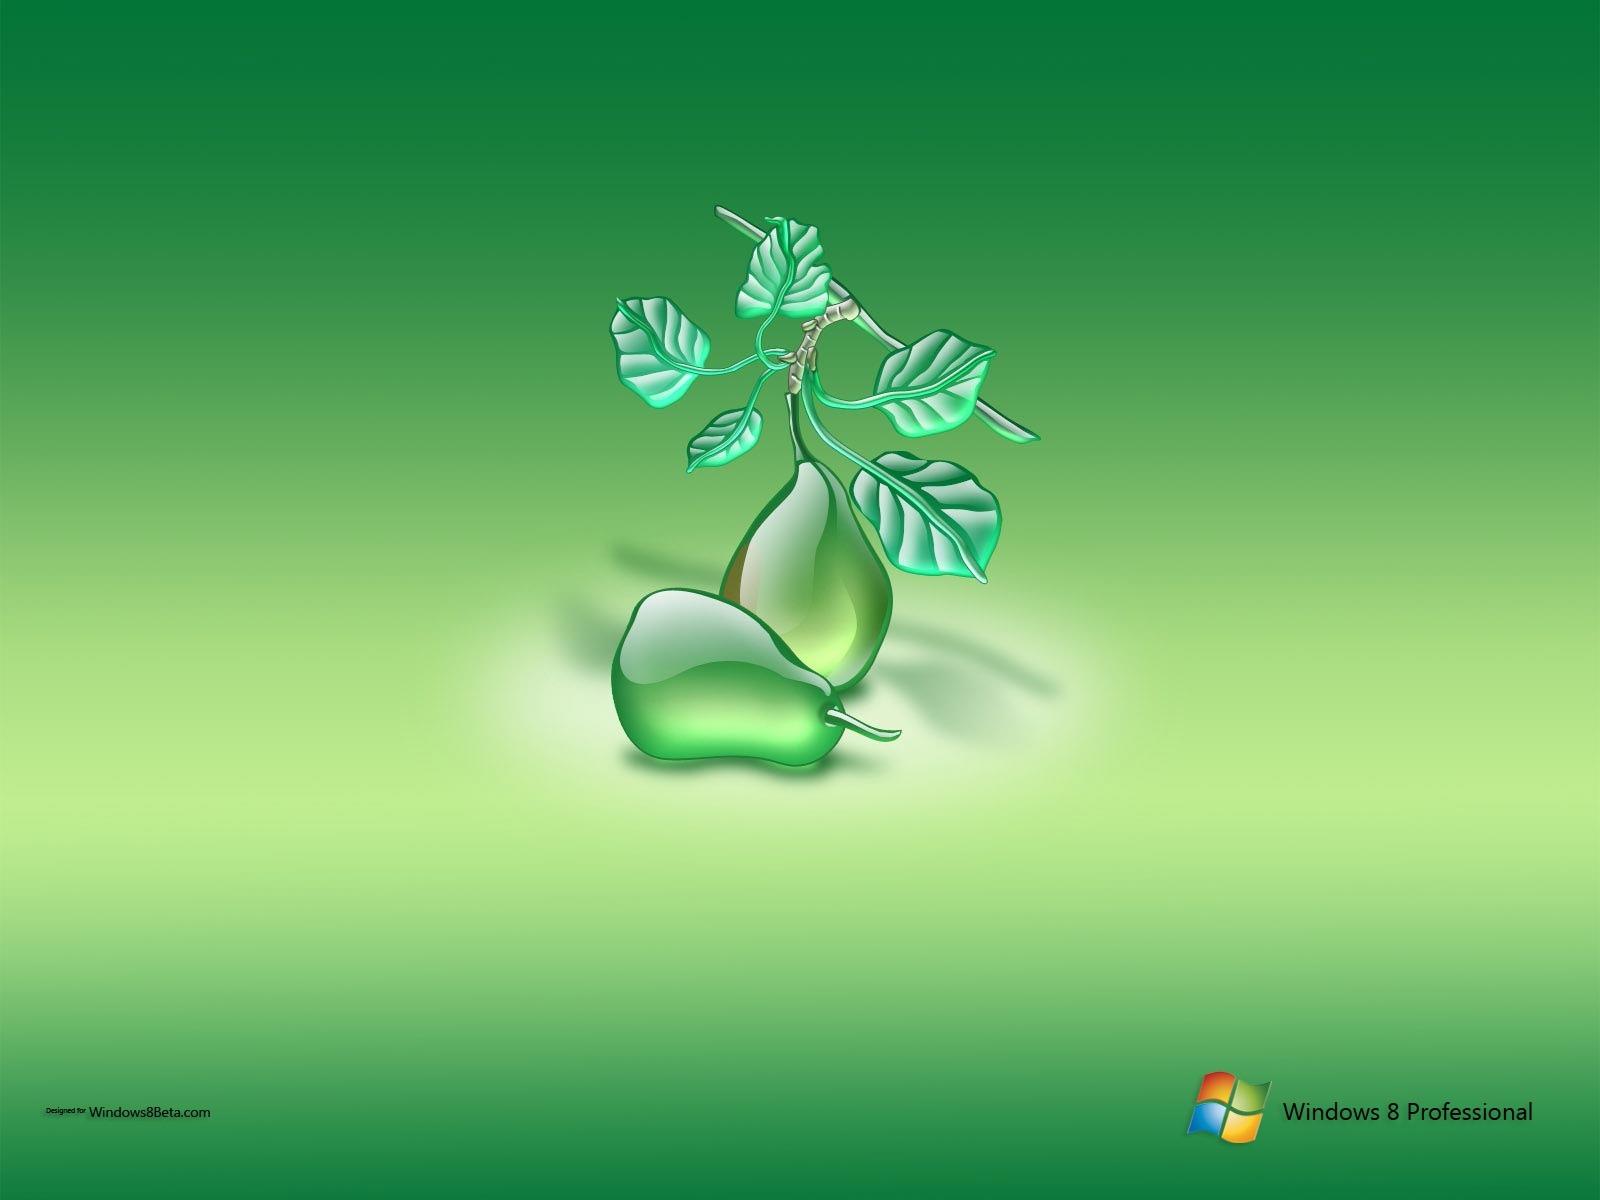 http://4.bp.blogspot.com/-2mi6O3AuqNs/TyUOnvNI1eI/AAAAAAAAAtA/Y95x5Qu2guA/s1600/Windows_8_wallpaper_2.jpg